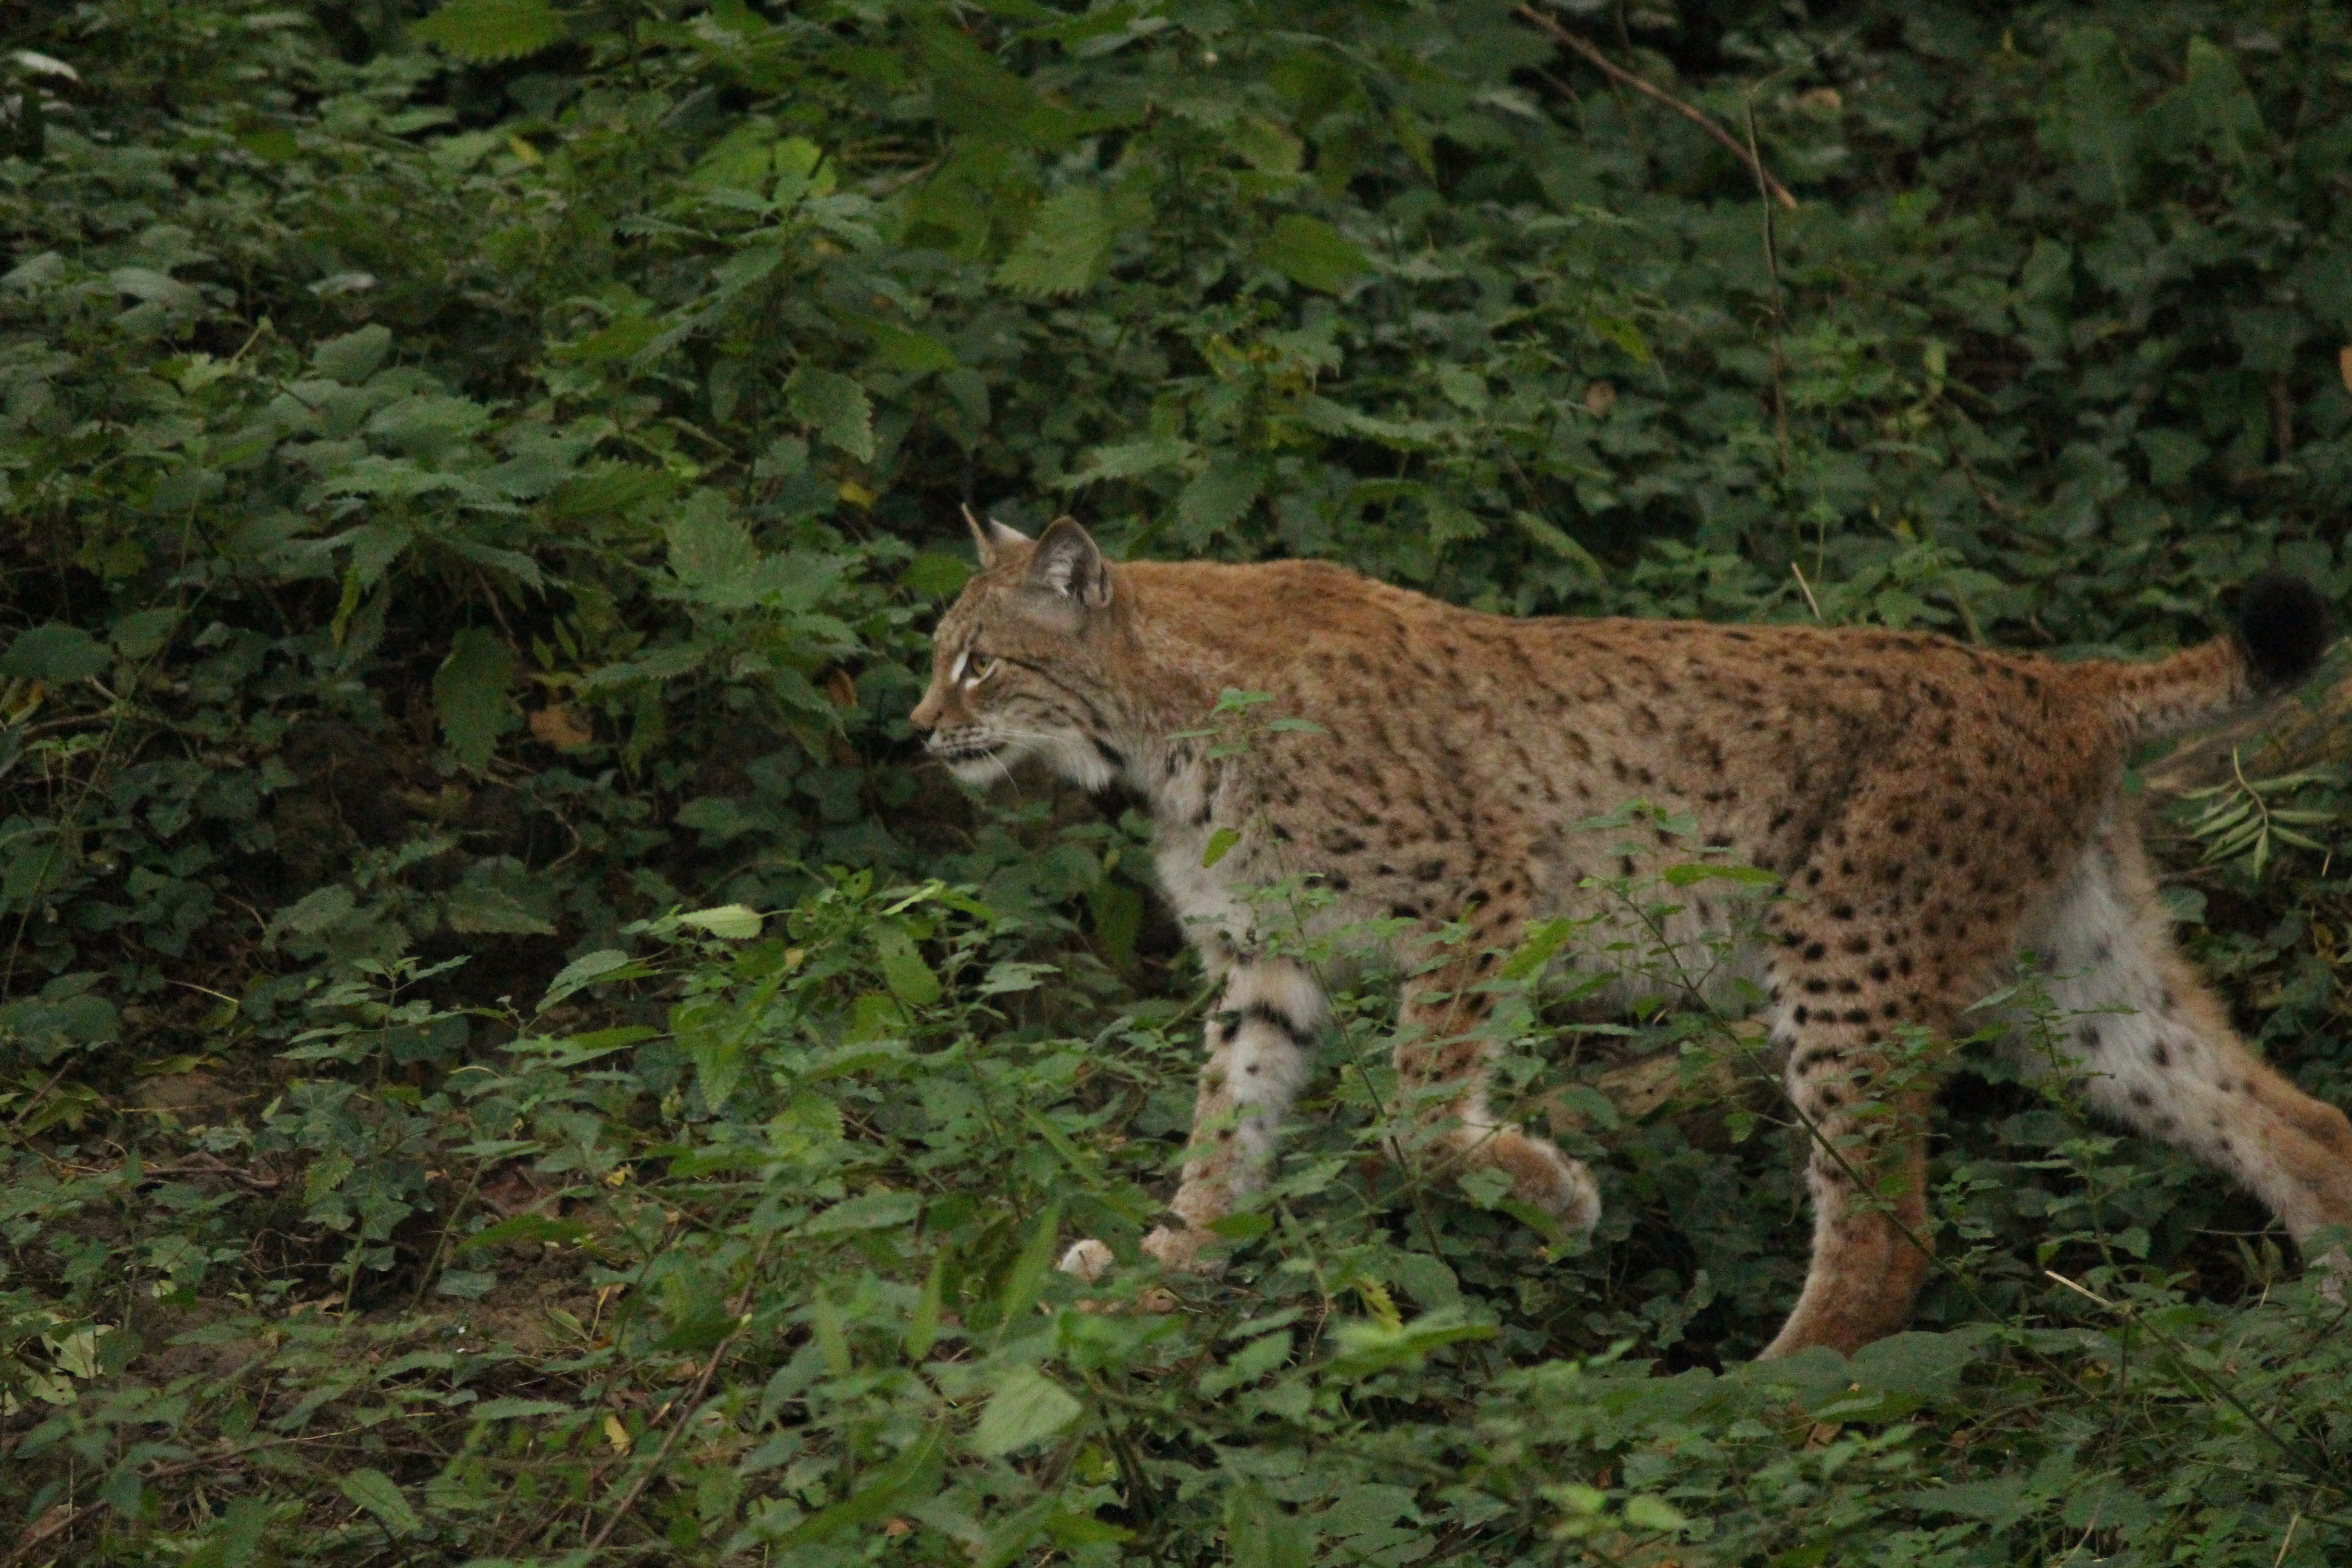 A lynx at the Wild Place Project in South Gloucestershire